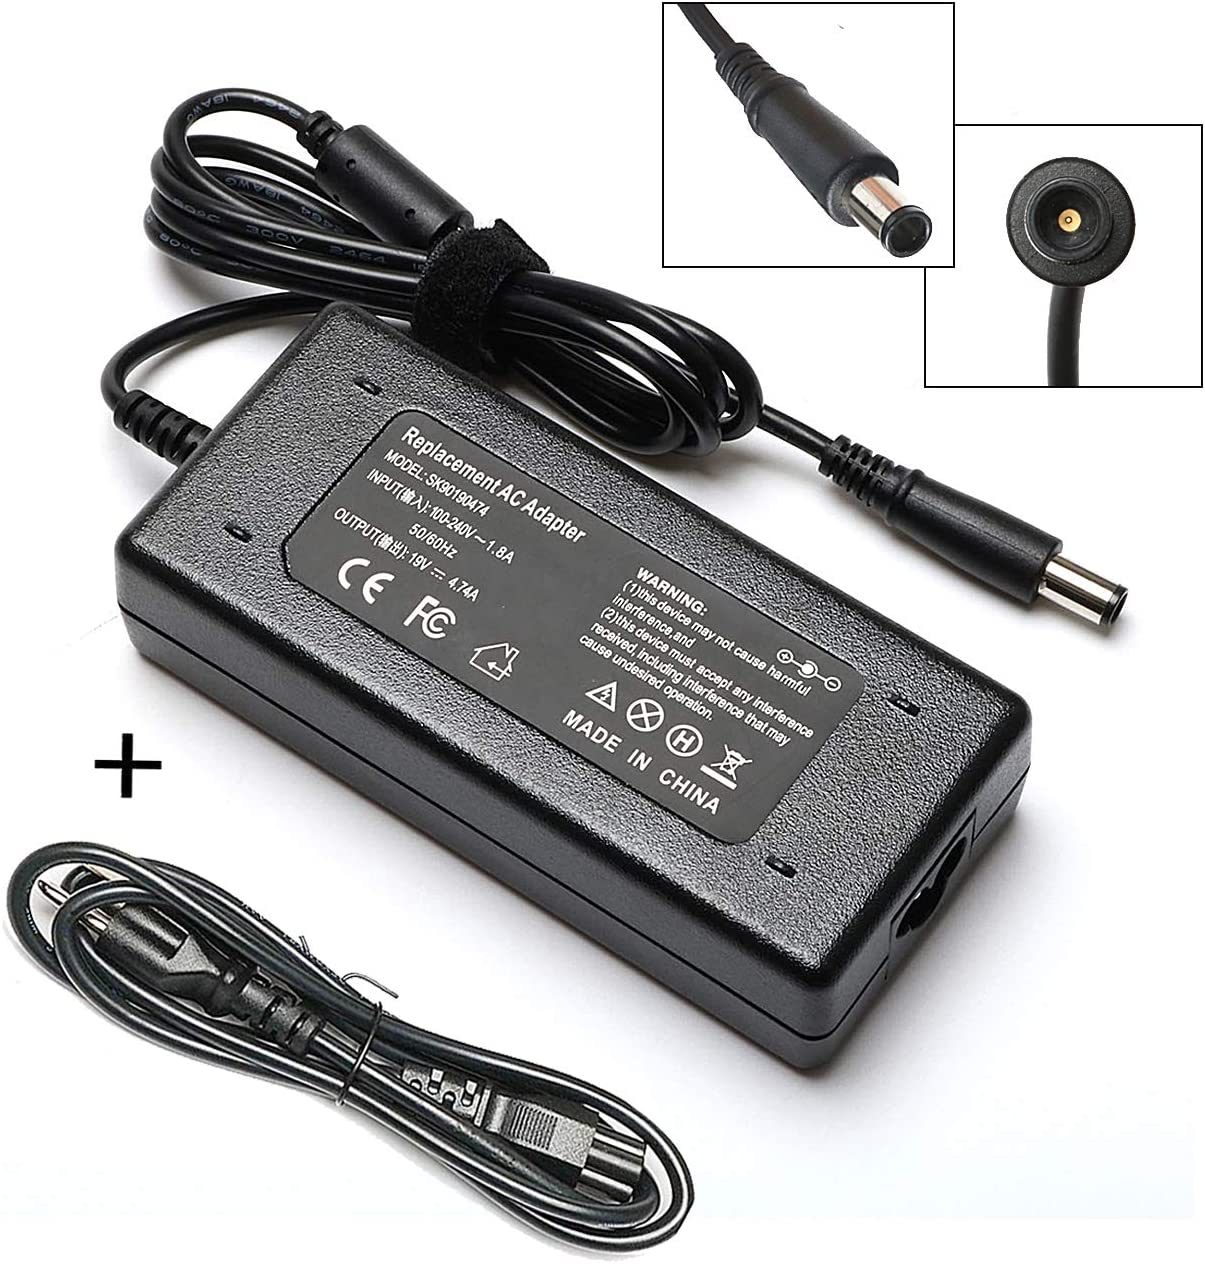 90W AC Adapter Laptop Charger Compatible for HP Probook 4530s 4540s 4330s 4430s 4440s 6550b 6460b 6560b 6470b 6570b HP Compaq 6530b 6730b 6910p nx9030 Laptop Notebook PC Power Supply Cord Plug